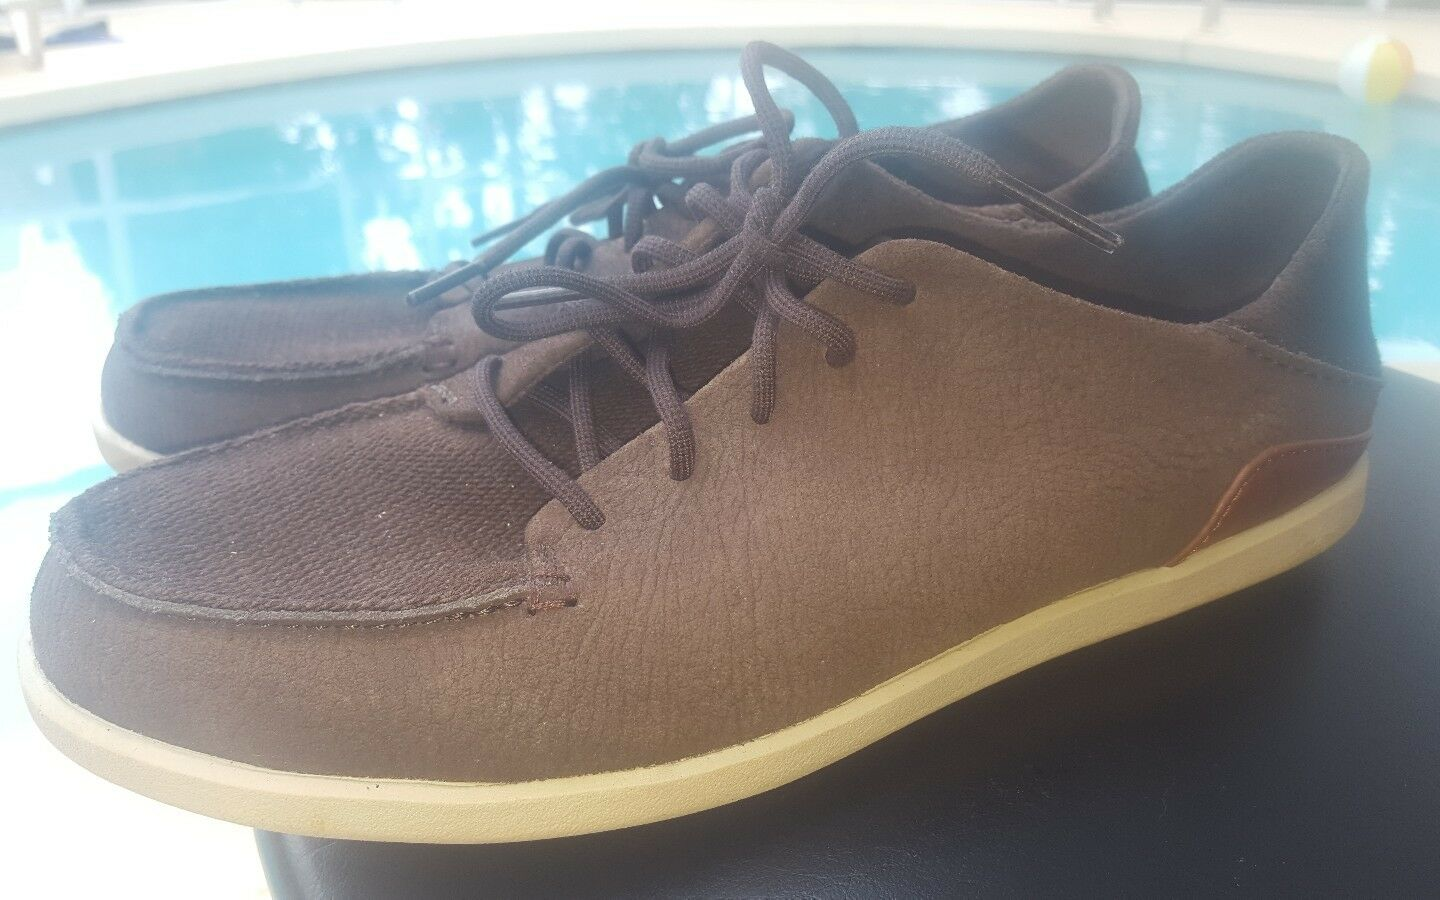 OluKai Uomo Manoa Pelle 5 eye lace up Marlin/Toffee. Taglia 8.5